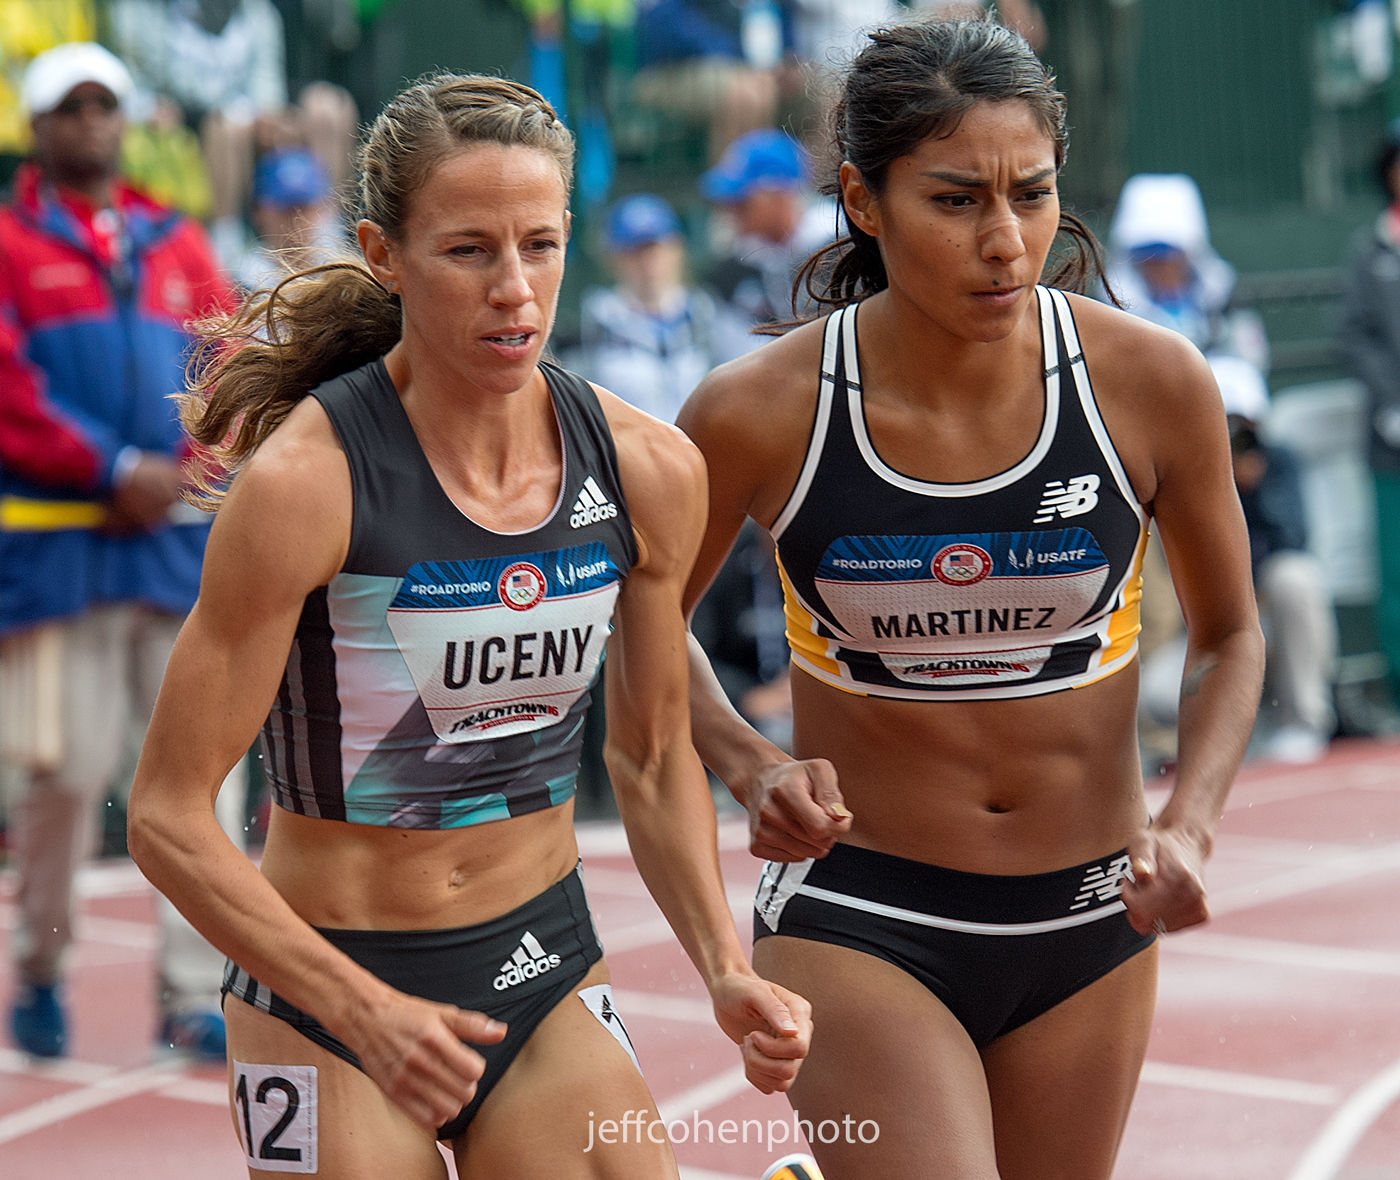 1r2016_oly_trials_day_7_uceny_martinez_1500w_rd1_jeff_cohen_photo_22976_web.jpg